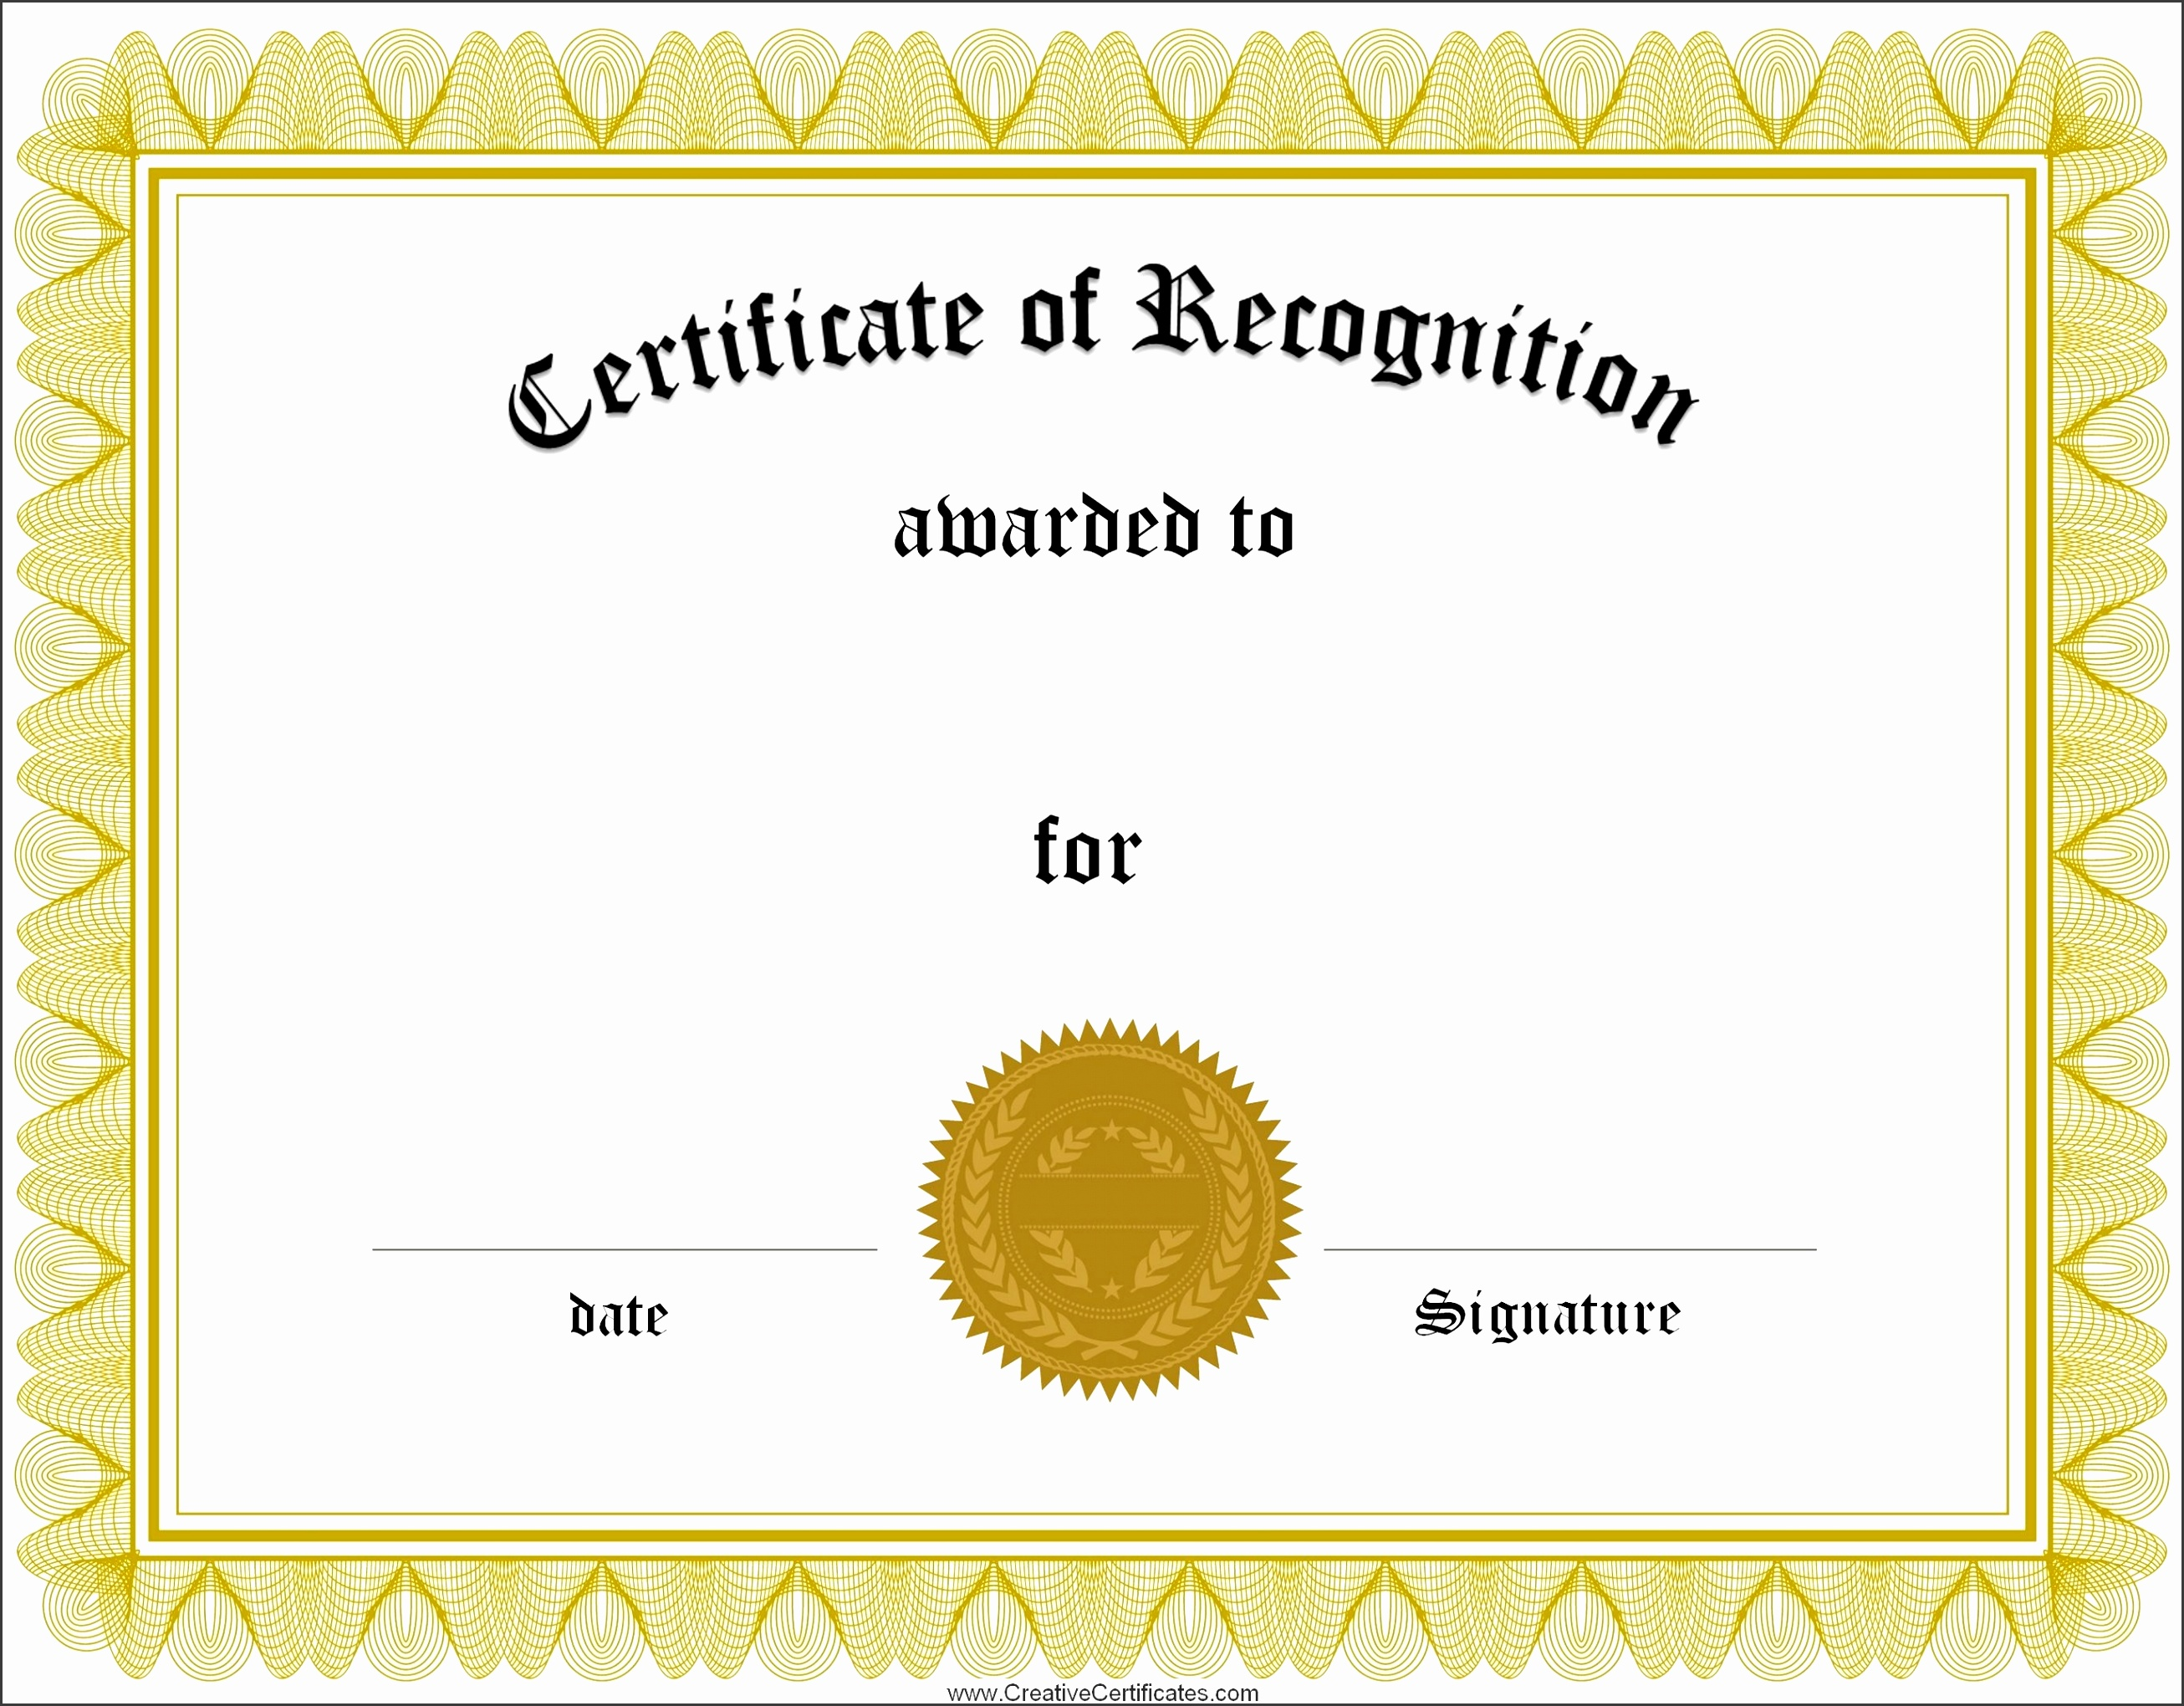 Collection solutions Free Certificate Recognition Template for Your Printable Certificate Recognition